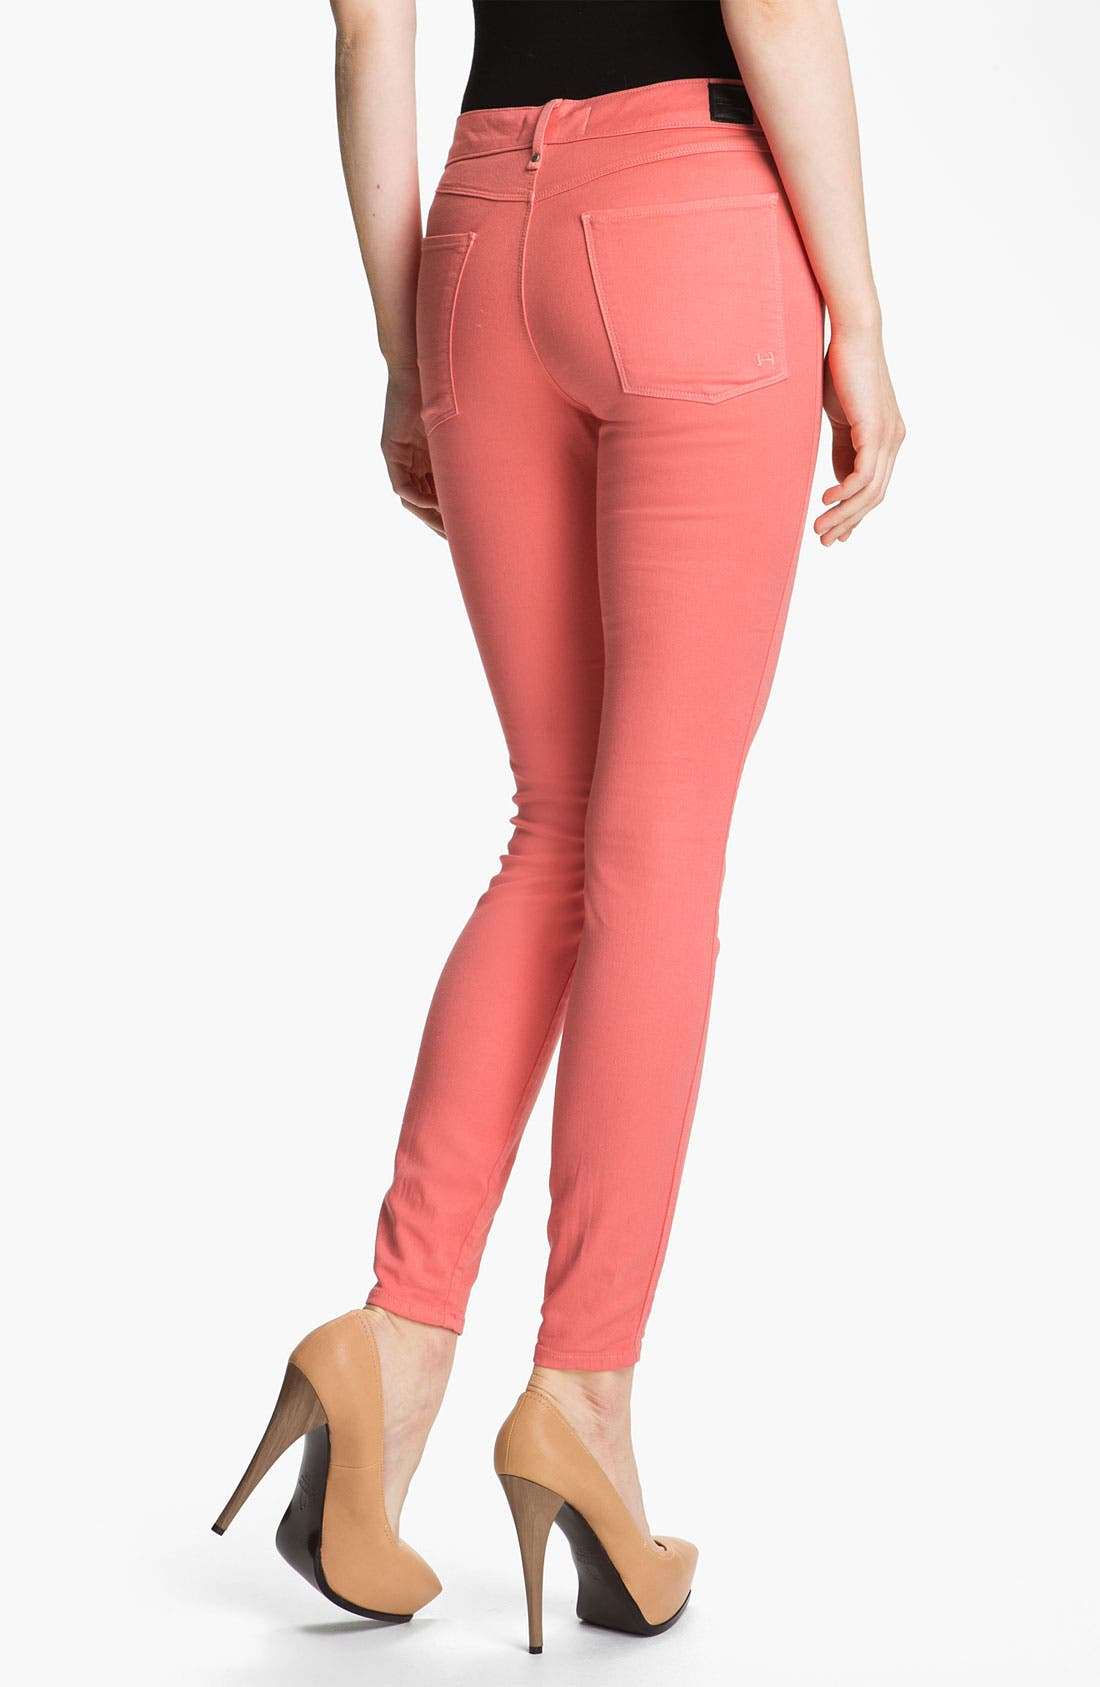 'Grace' High Rise Skinny Stretch Jeans,                             Alternate thumbnail 2, color,                             675